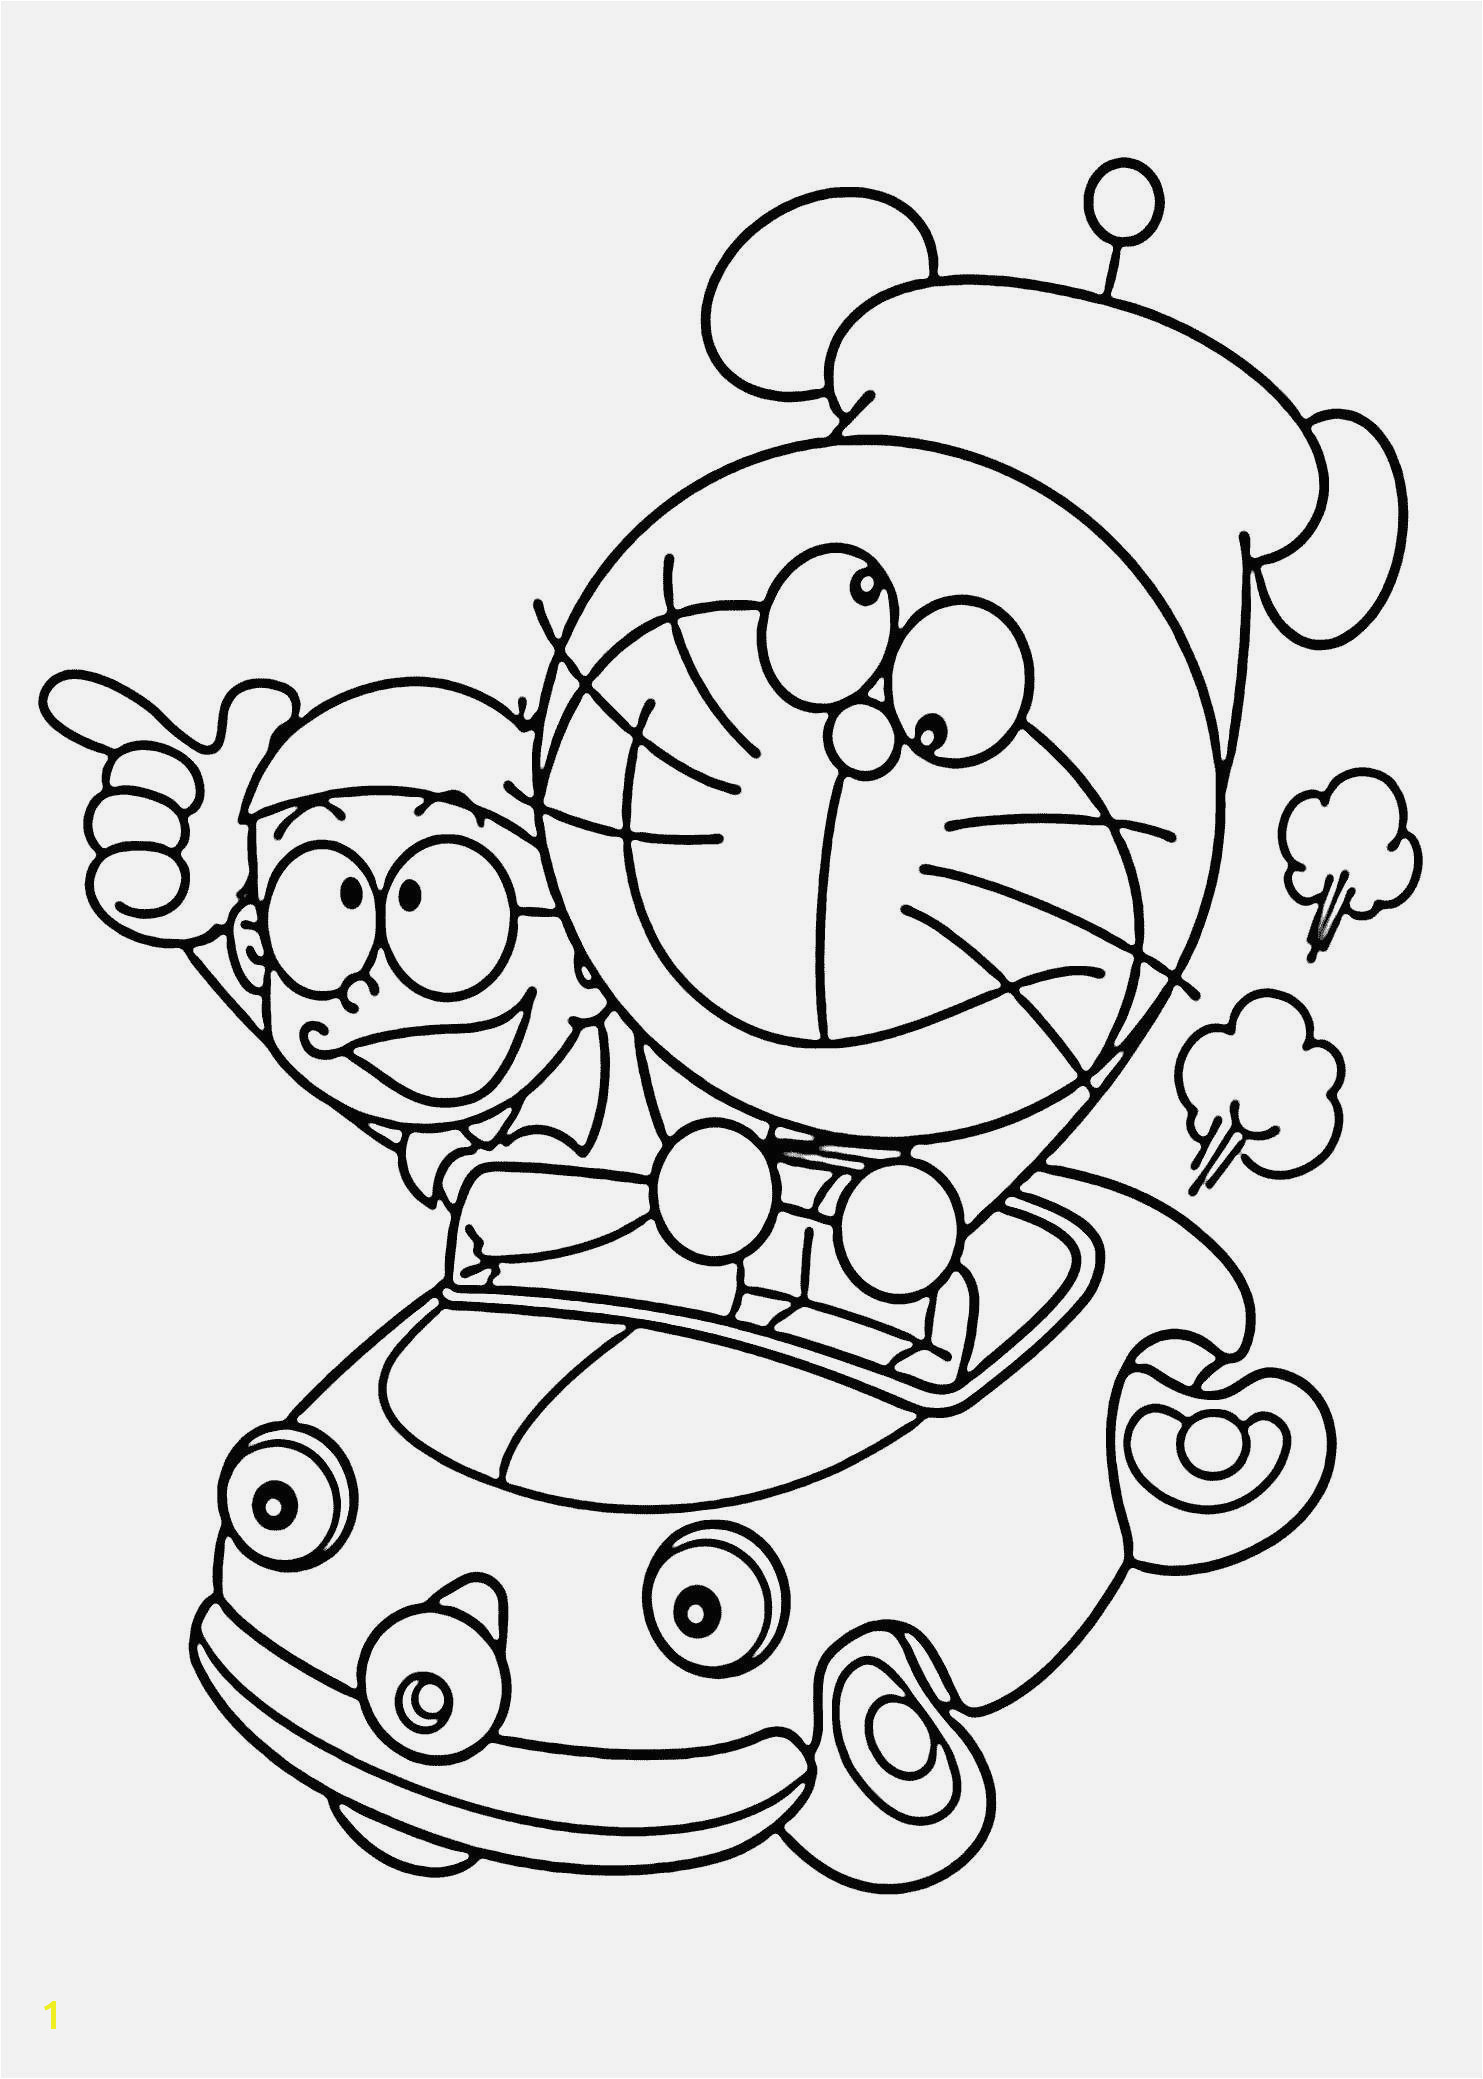 Calico Critters Coloring Pages Amazing Advantages butterfly Coloring Pages for Girls Printable